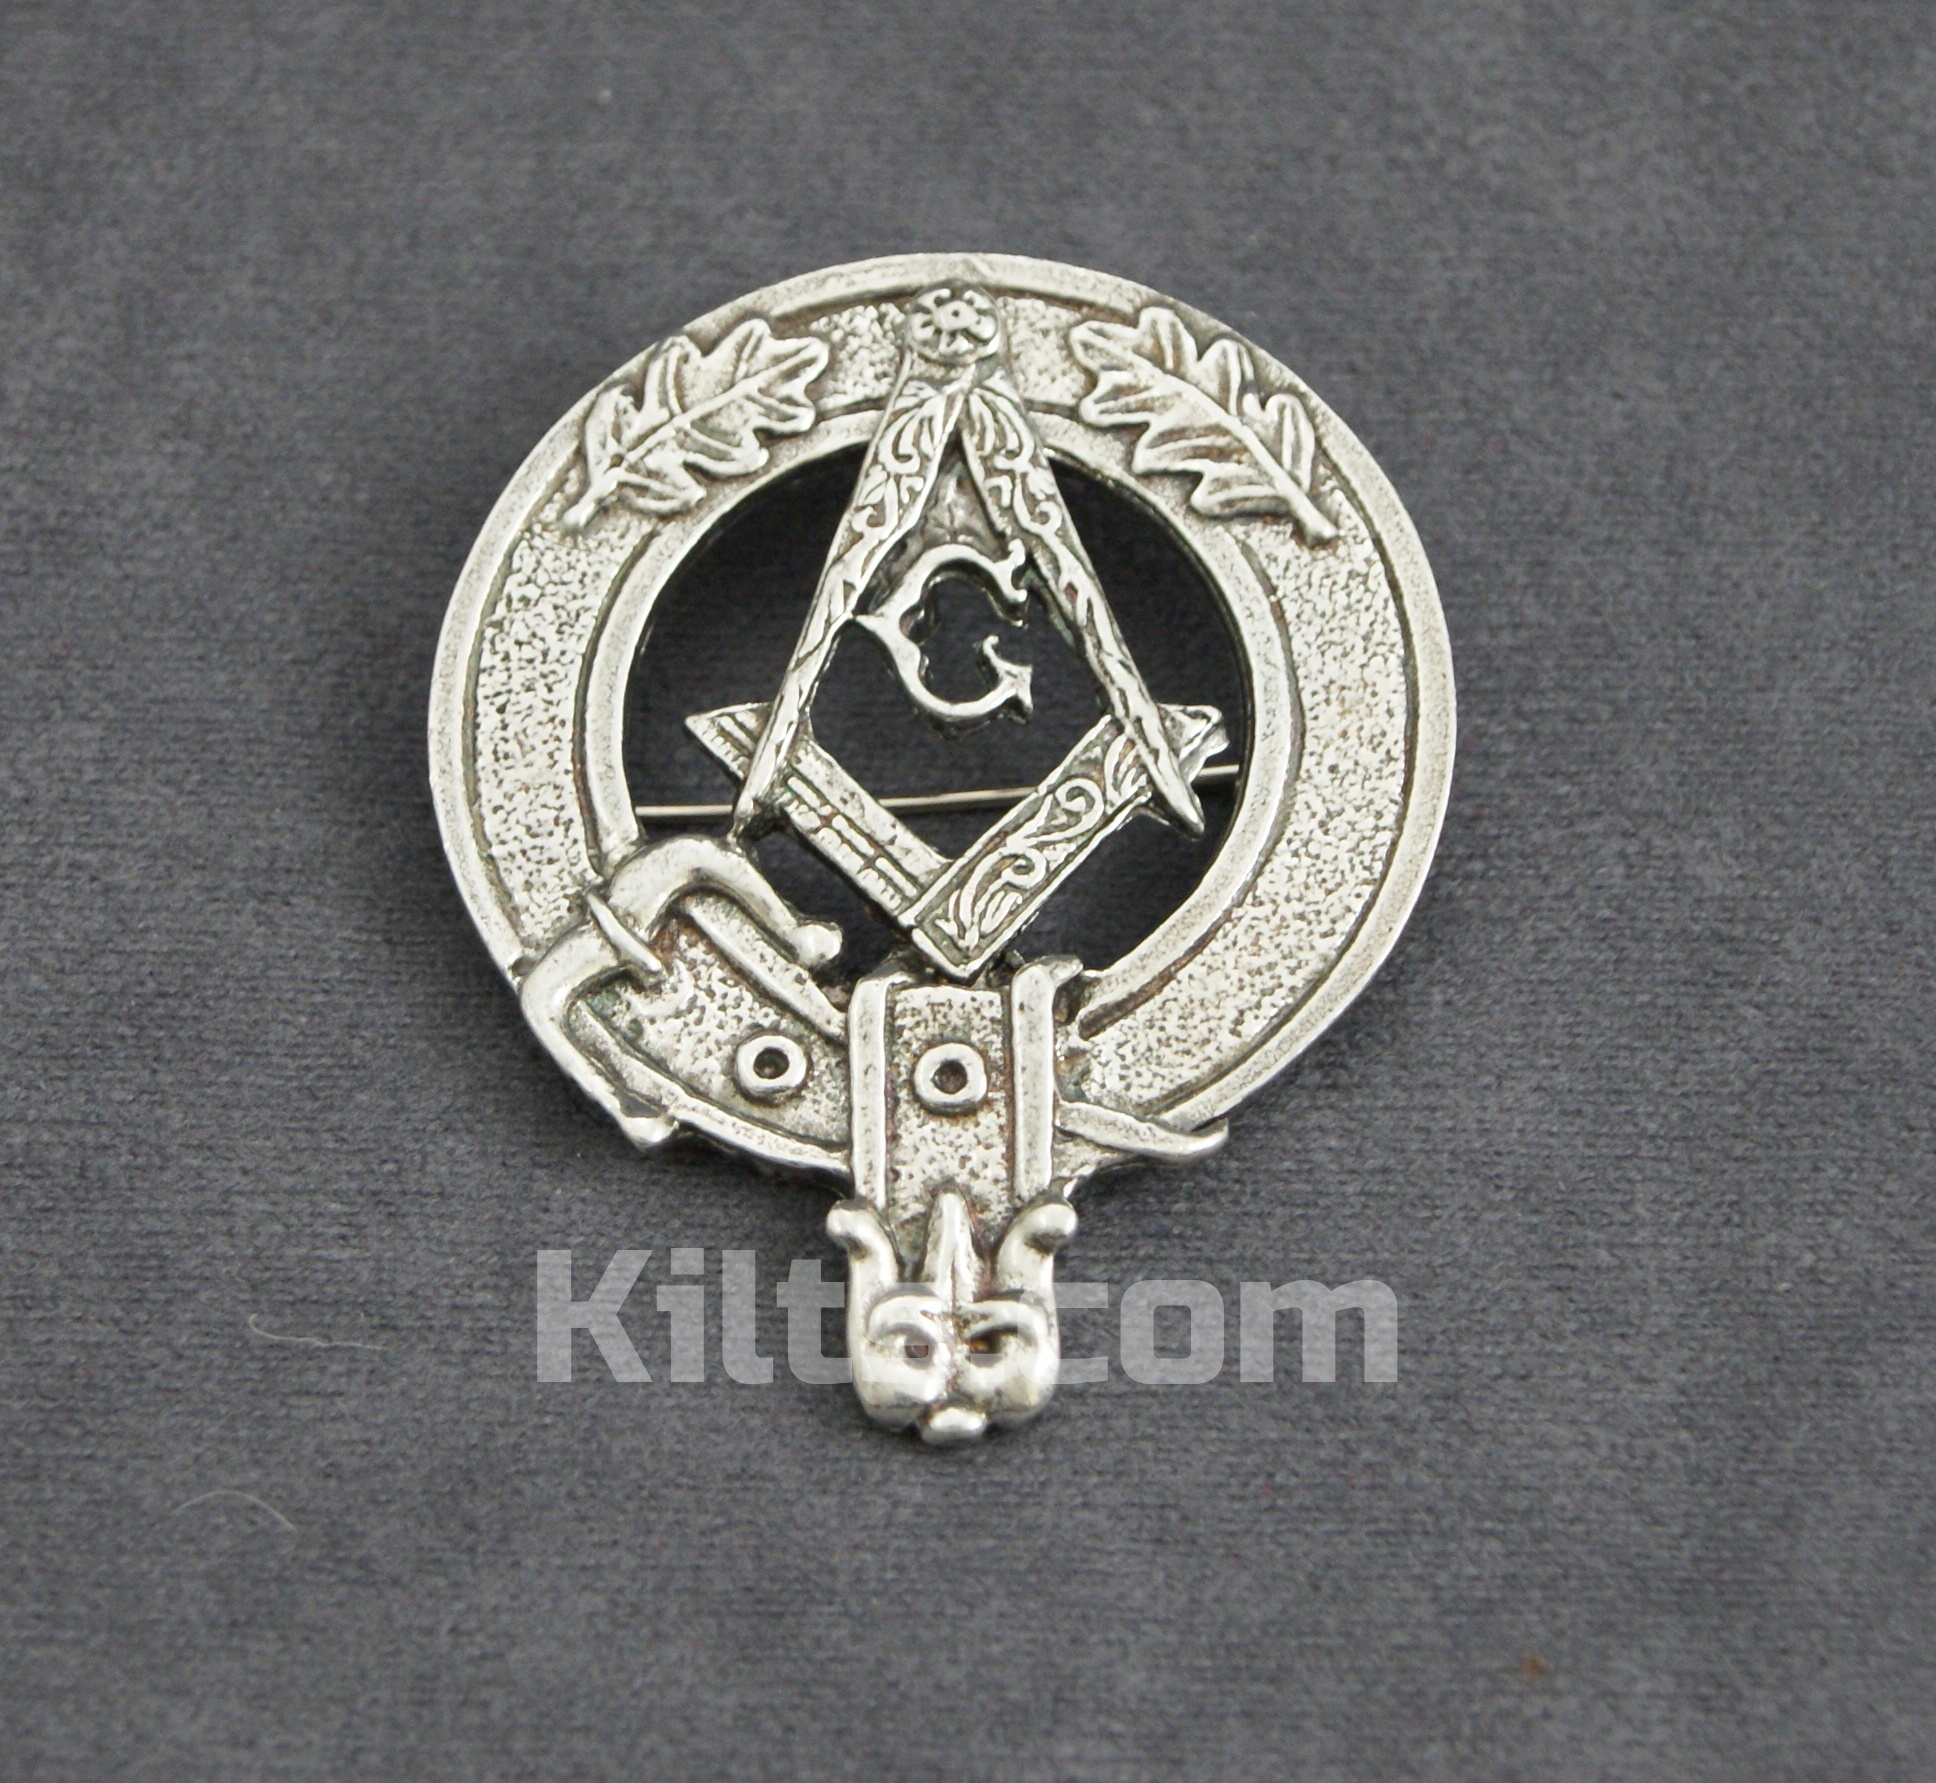 Check out our Masonic Cap Badge for sale.